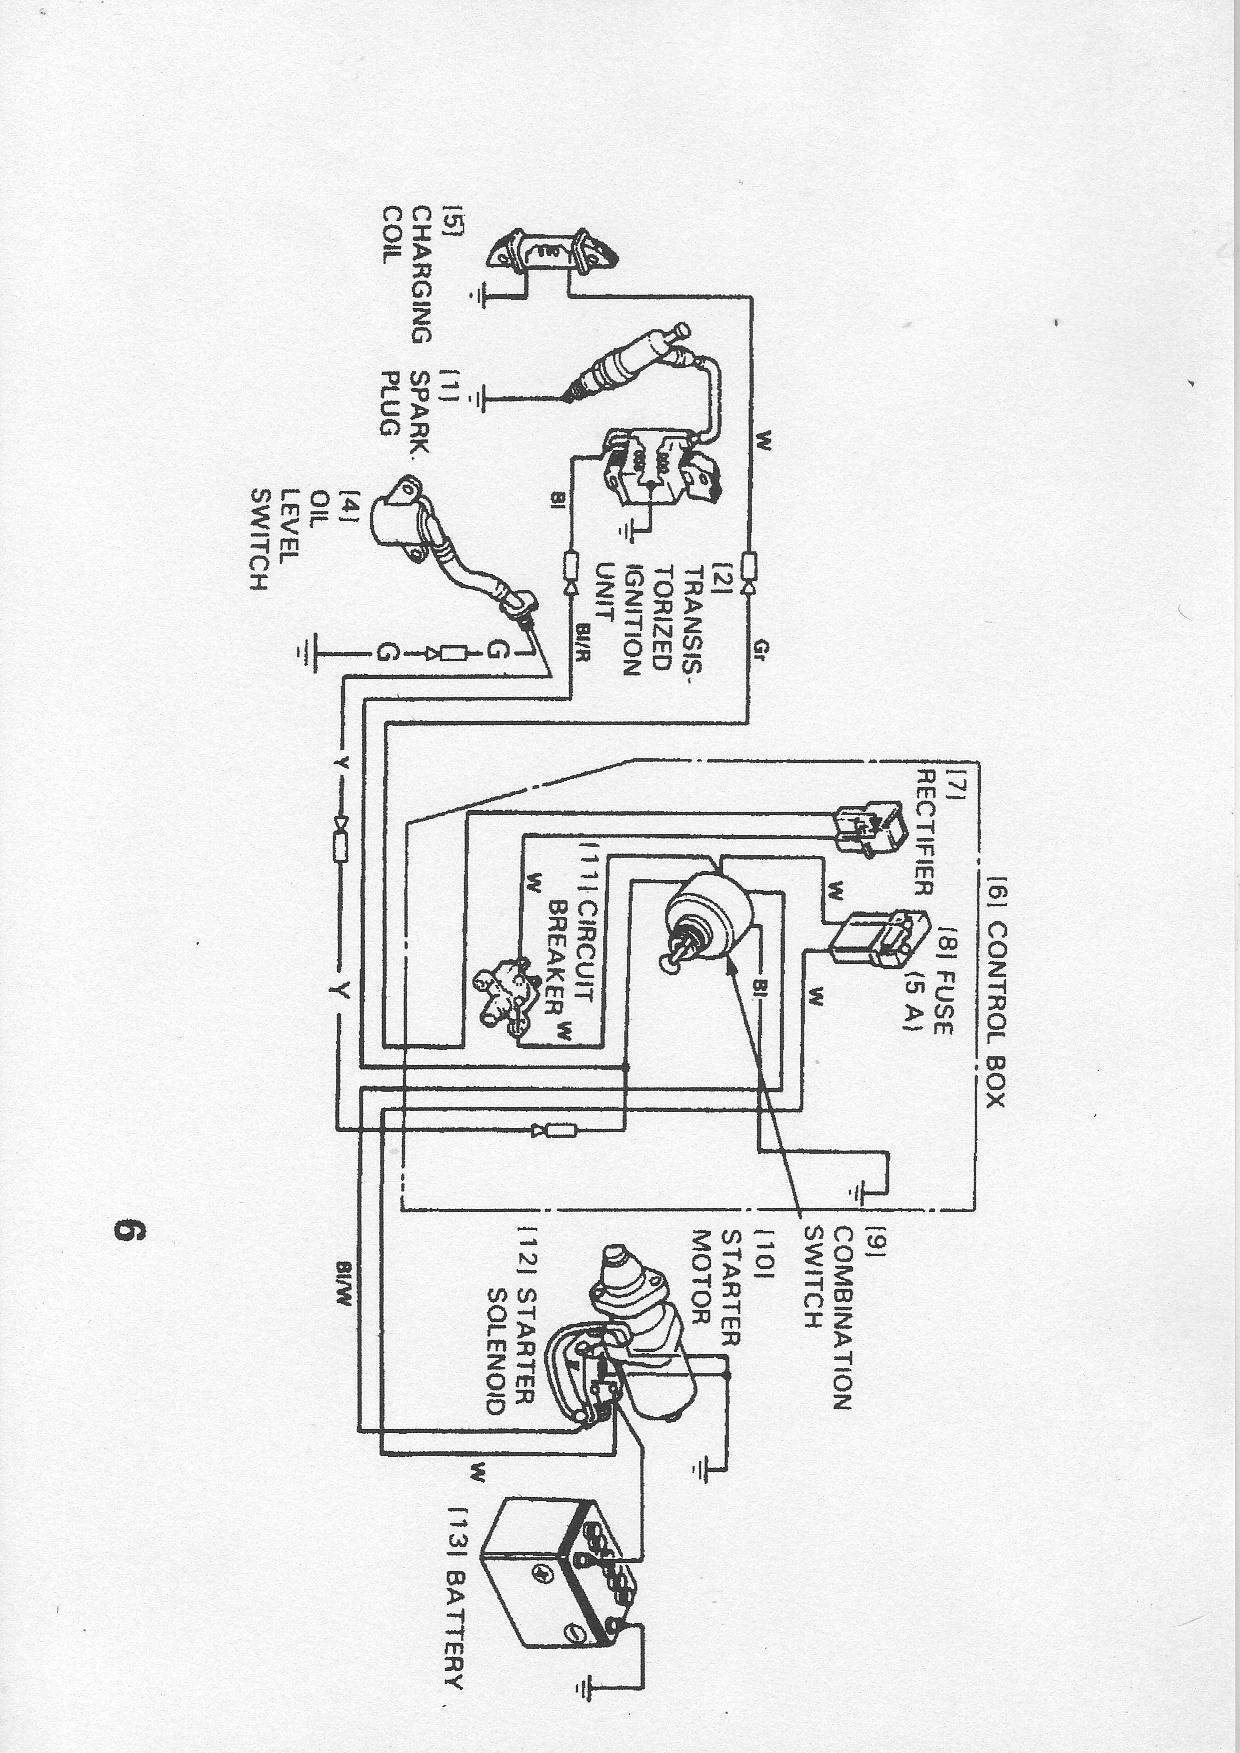 information – Honda Gx390 Wire Diagram